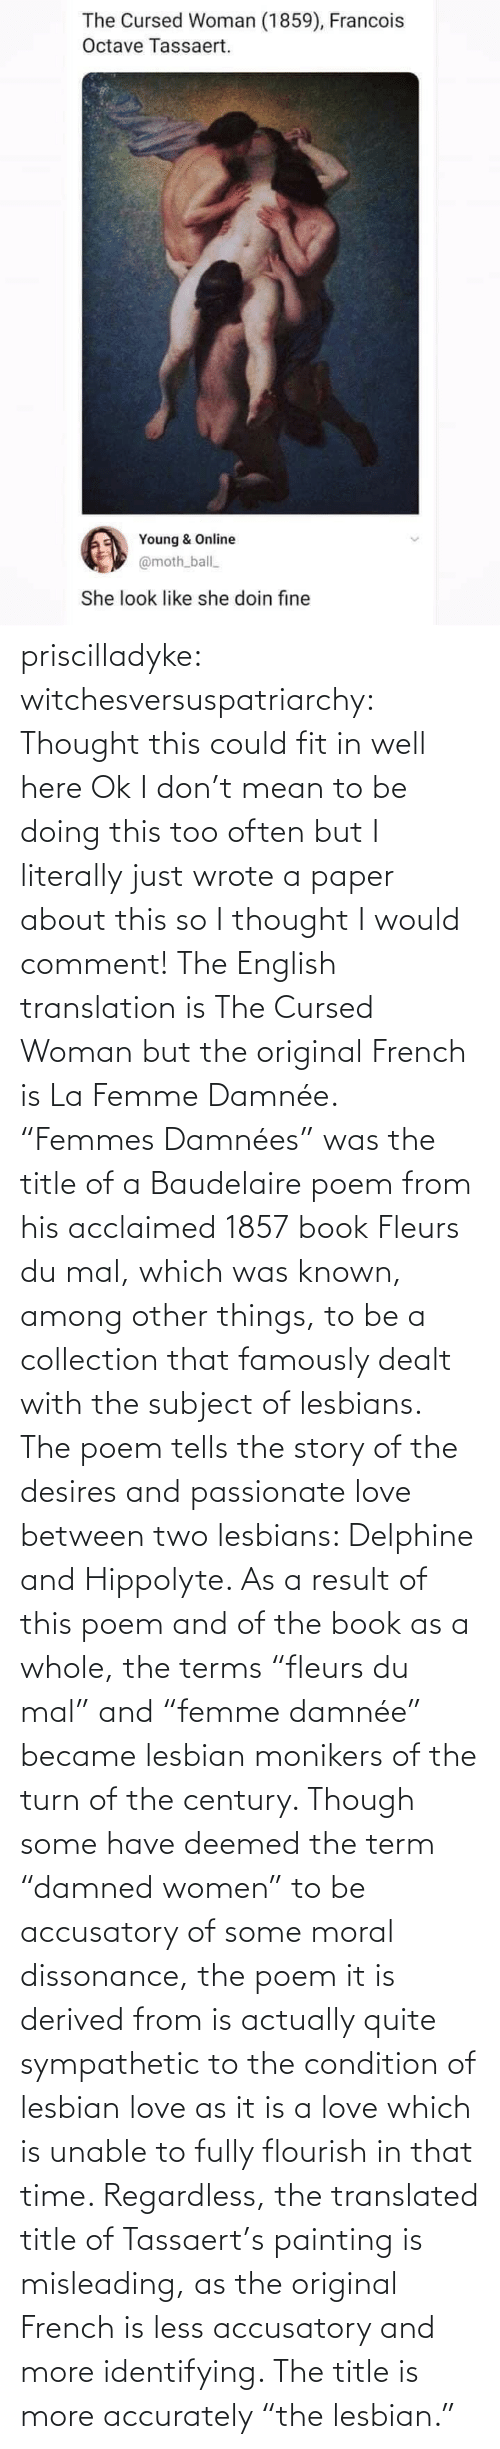 "turn: priscilladyke:  witchesversuspatriarchy: Thought this could fit in well here   Ok I don't mean to be doing this too often but I literally just wrote a paper about this so I thought I would comment! The English translation is The Cursed Woman but the original French is La Femme Damnée. ""Femmes Damnées"" was the title of a Baudelaire poem from his acclaimed 1857 book Fleurs du mal, which was known, among other things, to be a collection that famously dealt with the subject of lesbians. The poem tells the story of the desires and passionate love between two lesbians:  Delphine and Hippolyte. As a result of this poem and of the book as a whole, the terms ""fleurs du mal"" and ""femme damnée"" became lesbian monikers of the turn of the century. Though some have deemed the term ""damned women"" to be accusatory of some moral dissonance, the poem it is derived from is actually quite sympathetic to the condition of lesbian love as it is a love which is unable to fully flourish in that time. Regardless, the translated title of Tassaert's painting is misleading, as the original French is less accusatory and more identifying. The title is more accurately ""the lesbian."""